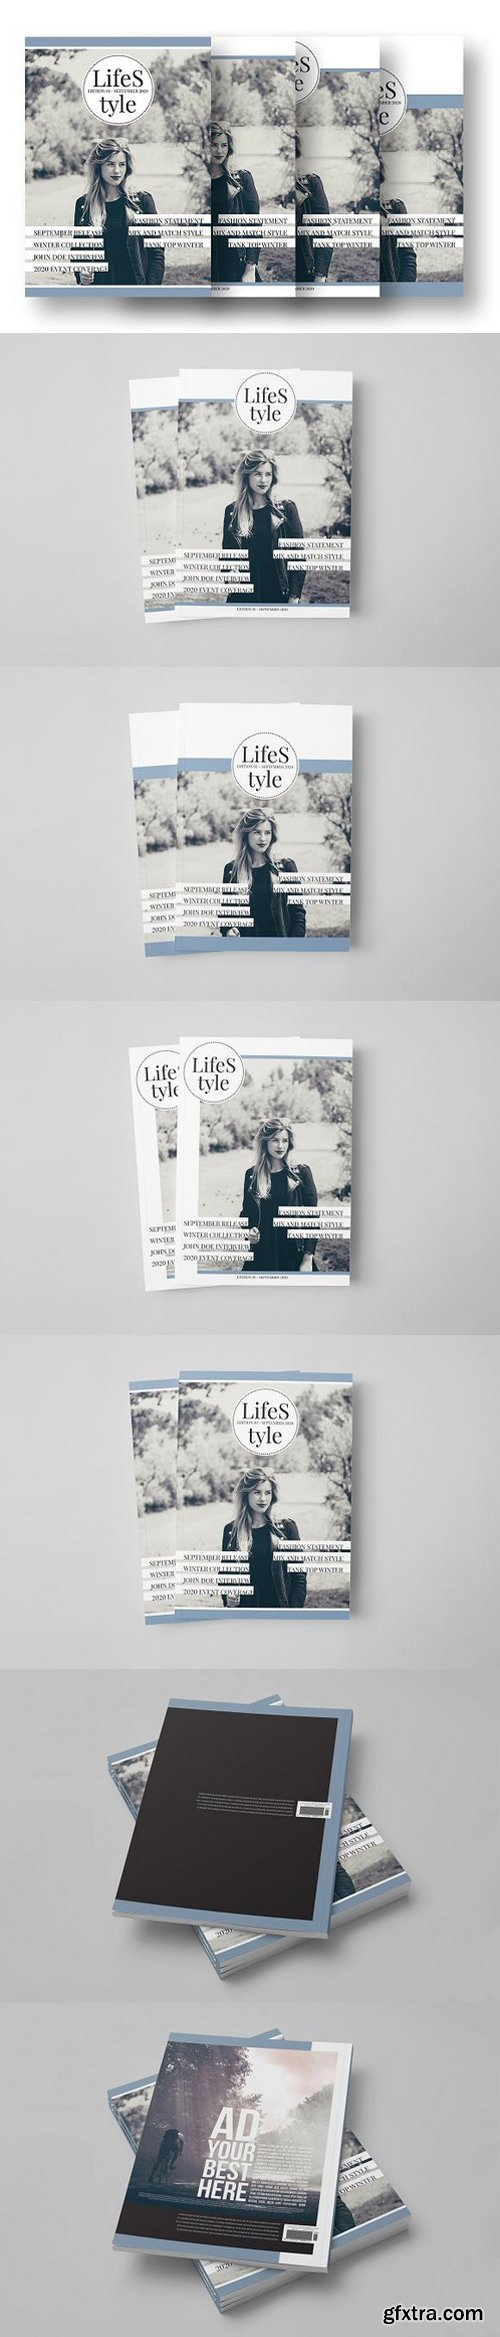 CM - LifeS tyle - A4 Cover Template 1480693